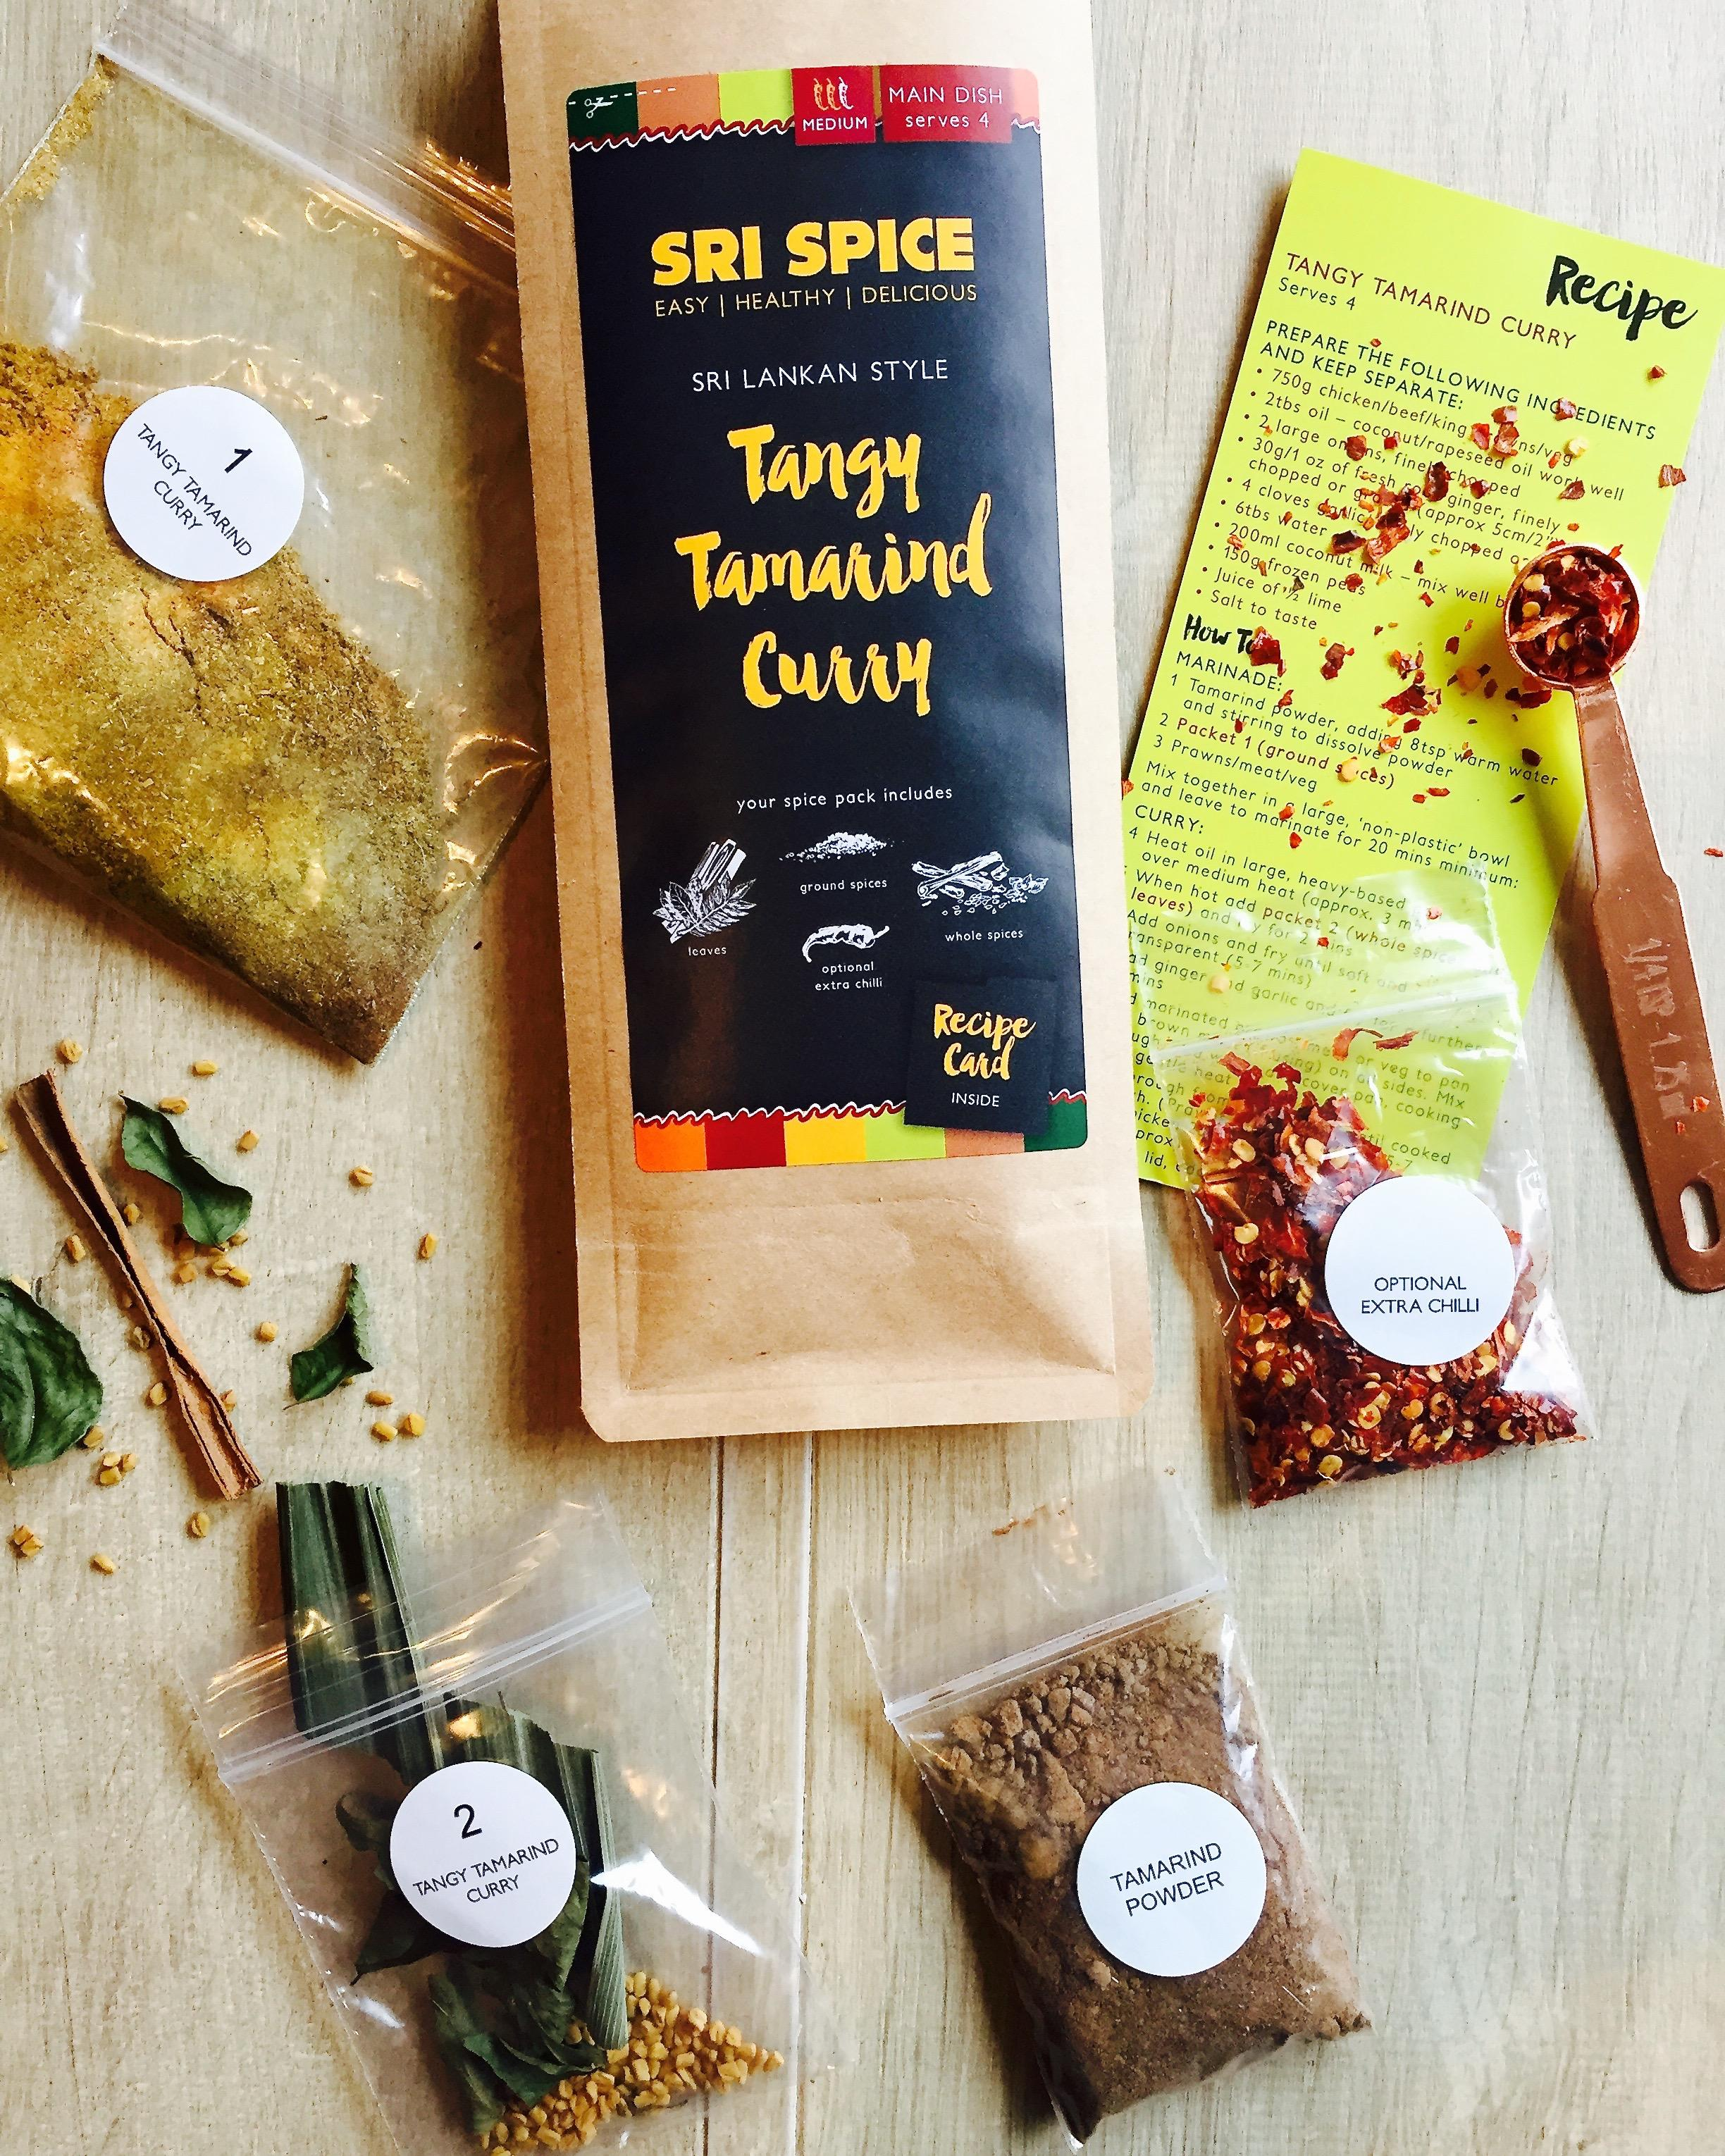 Tangy Tamarind Recipe card and spices